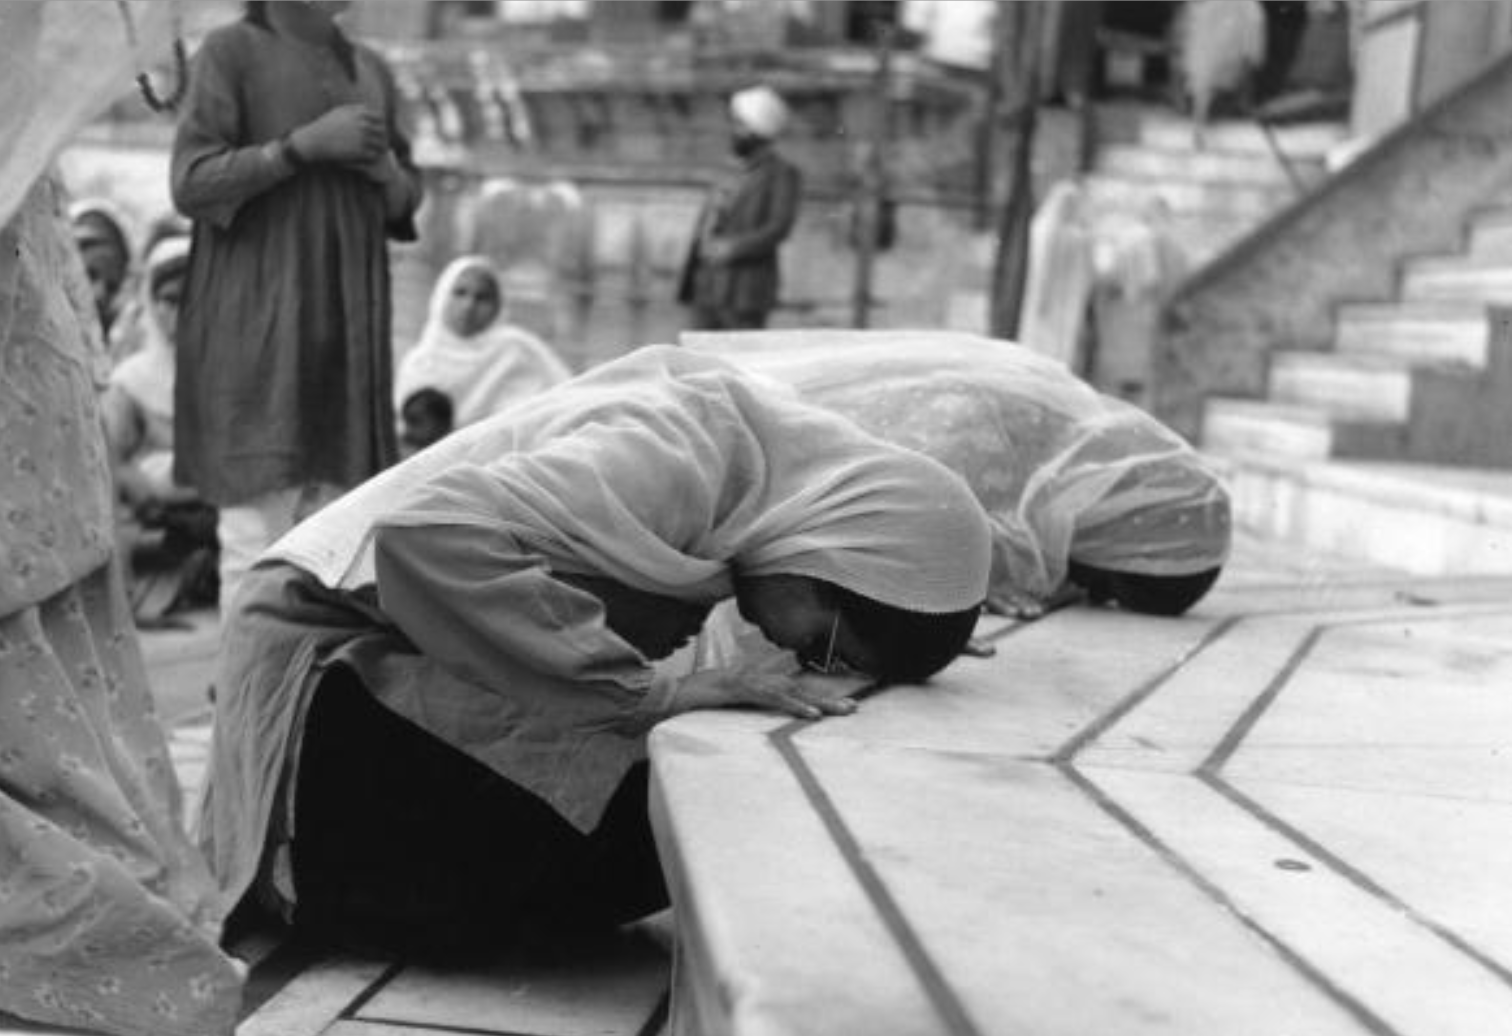 Circa 1955: two Sikh women bow outside the entrance to Darbar Sahib, which is one of the most historically significant gurdwaras for Sikhs, and is located in Amritsar, Punjab. (Photo by Three Lions/Getty Images)